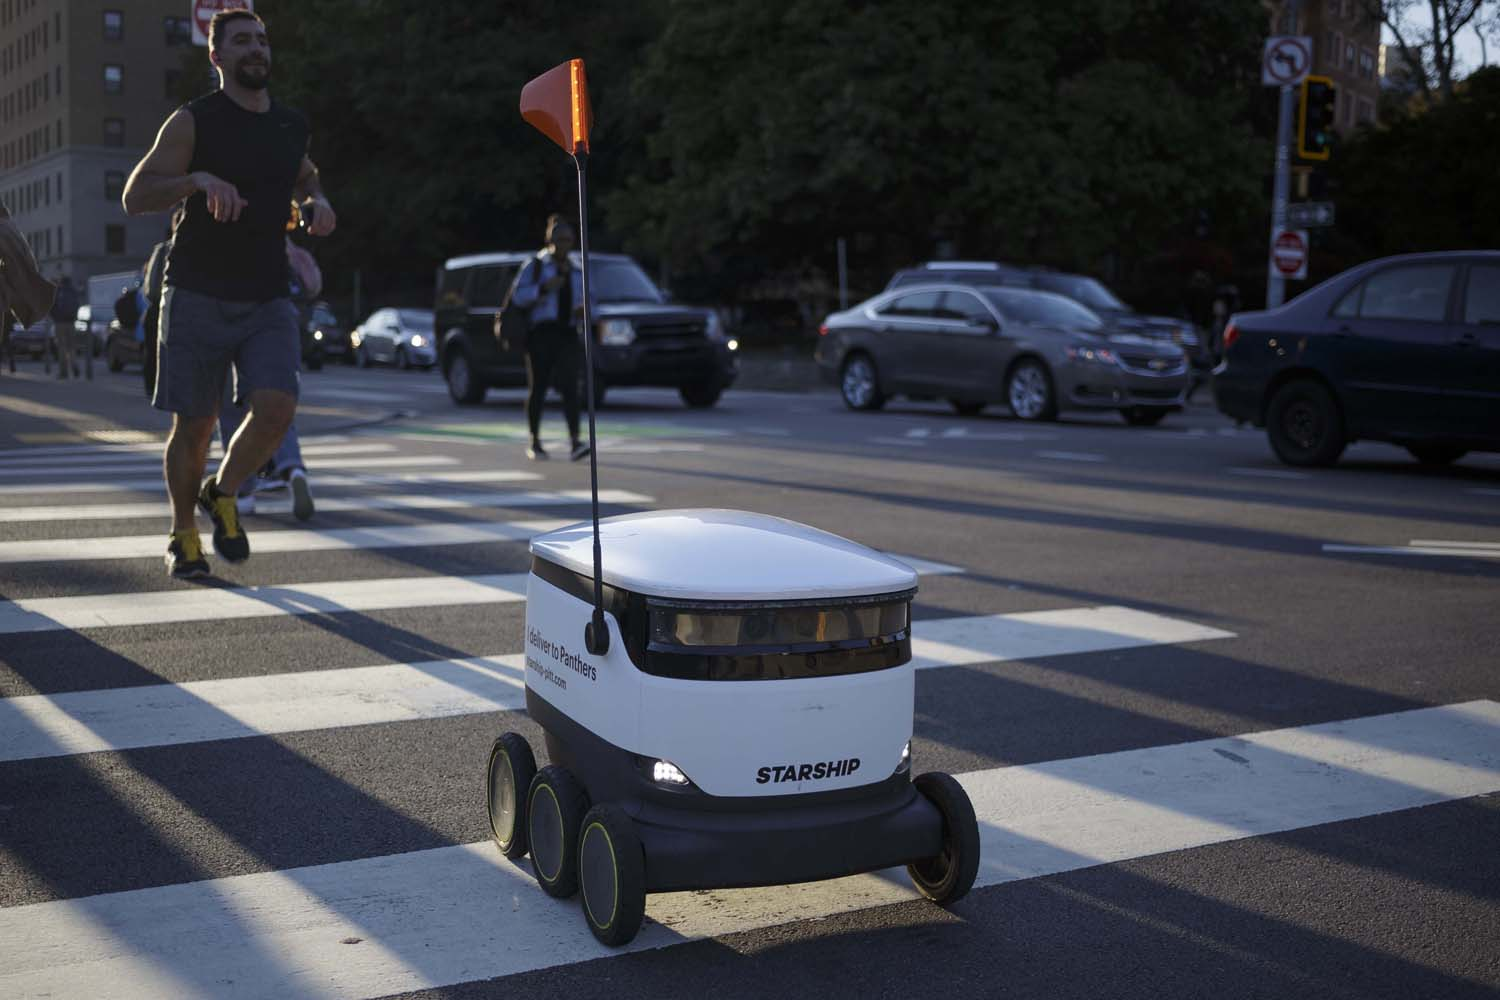 The testing of the Starship Technologies food delivery robots has halted due to concerns over potential safety issues for wheelchair users.